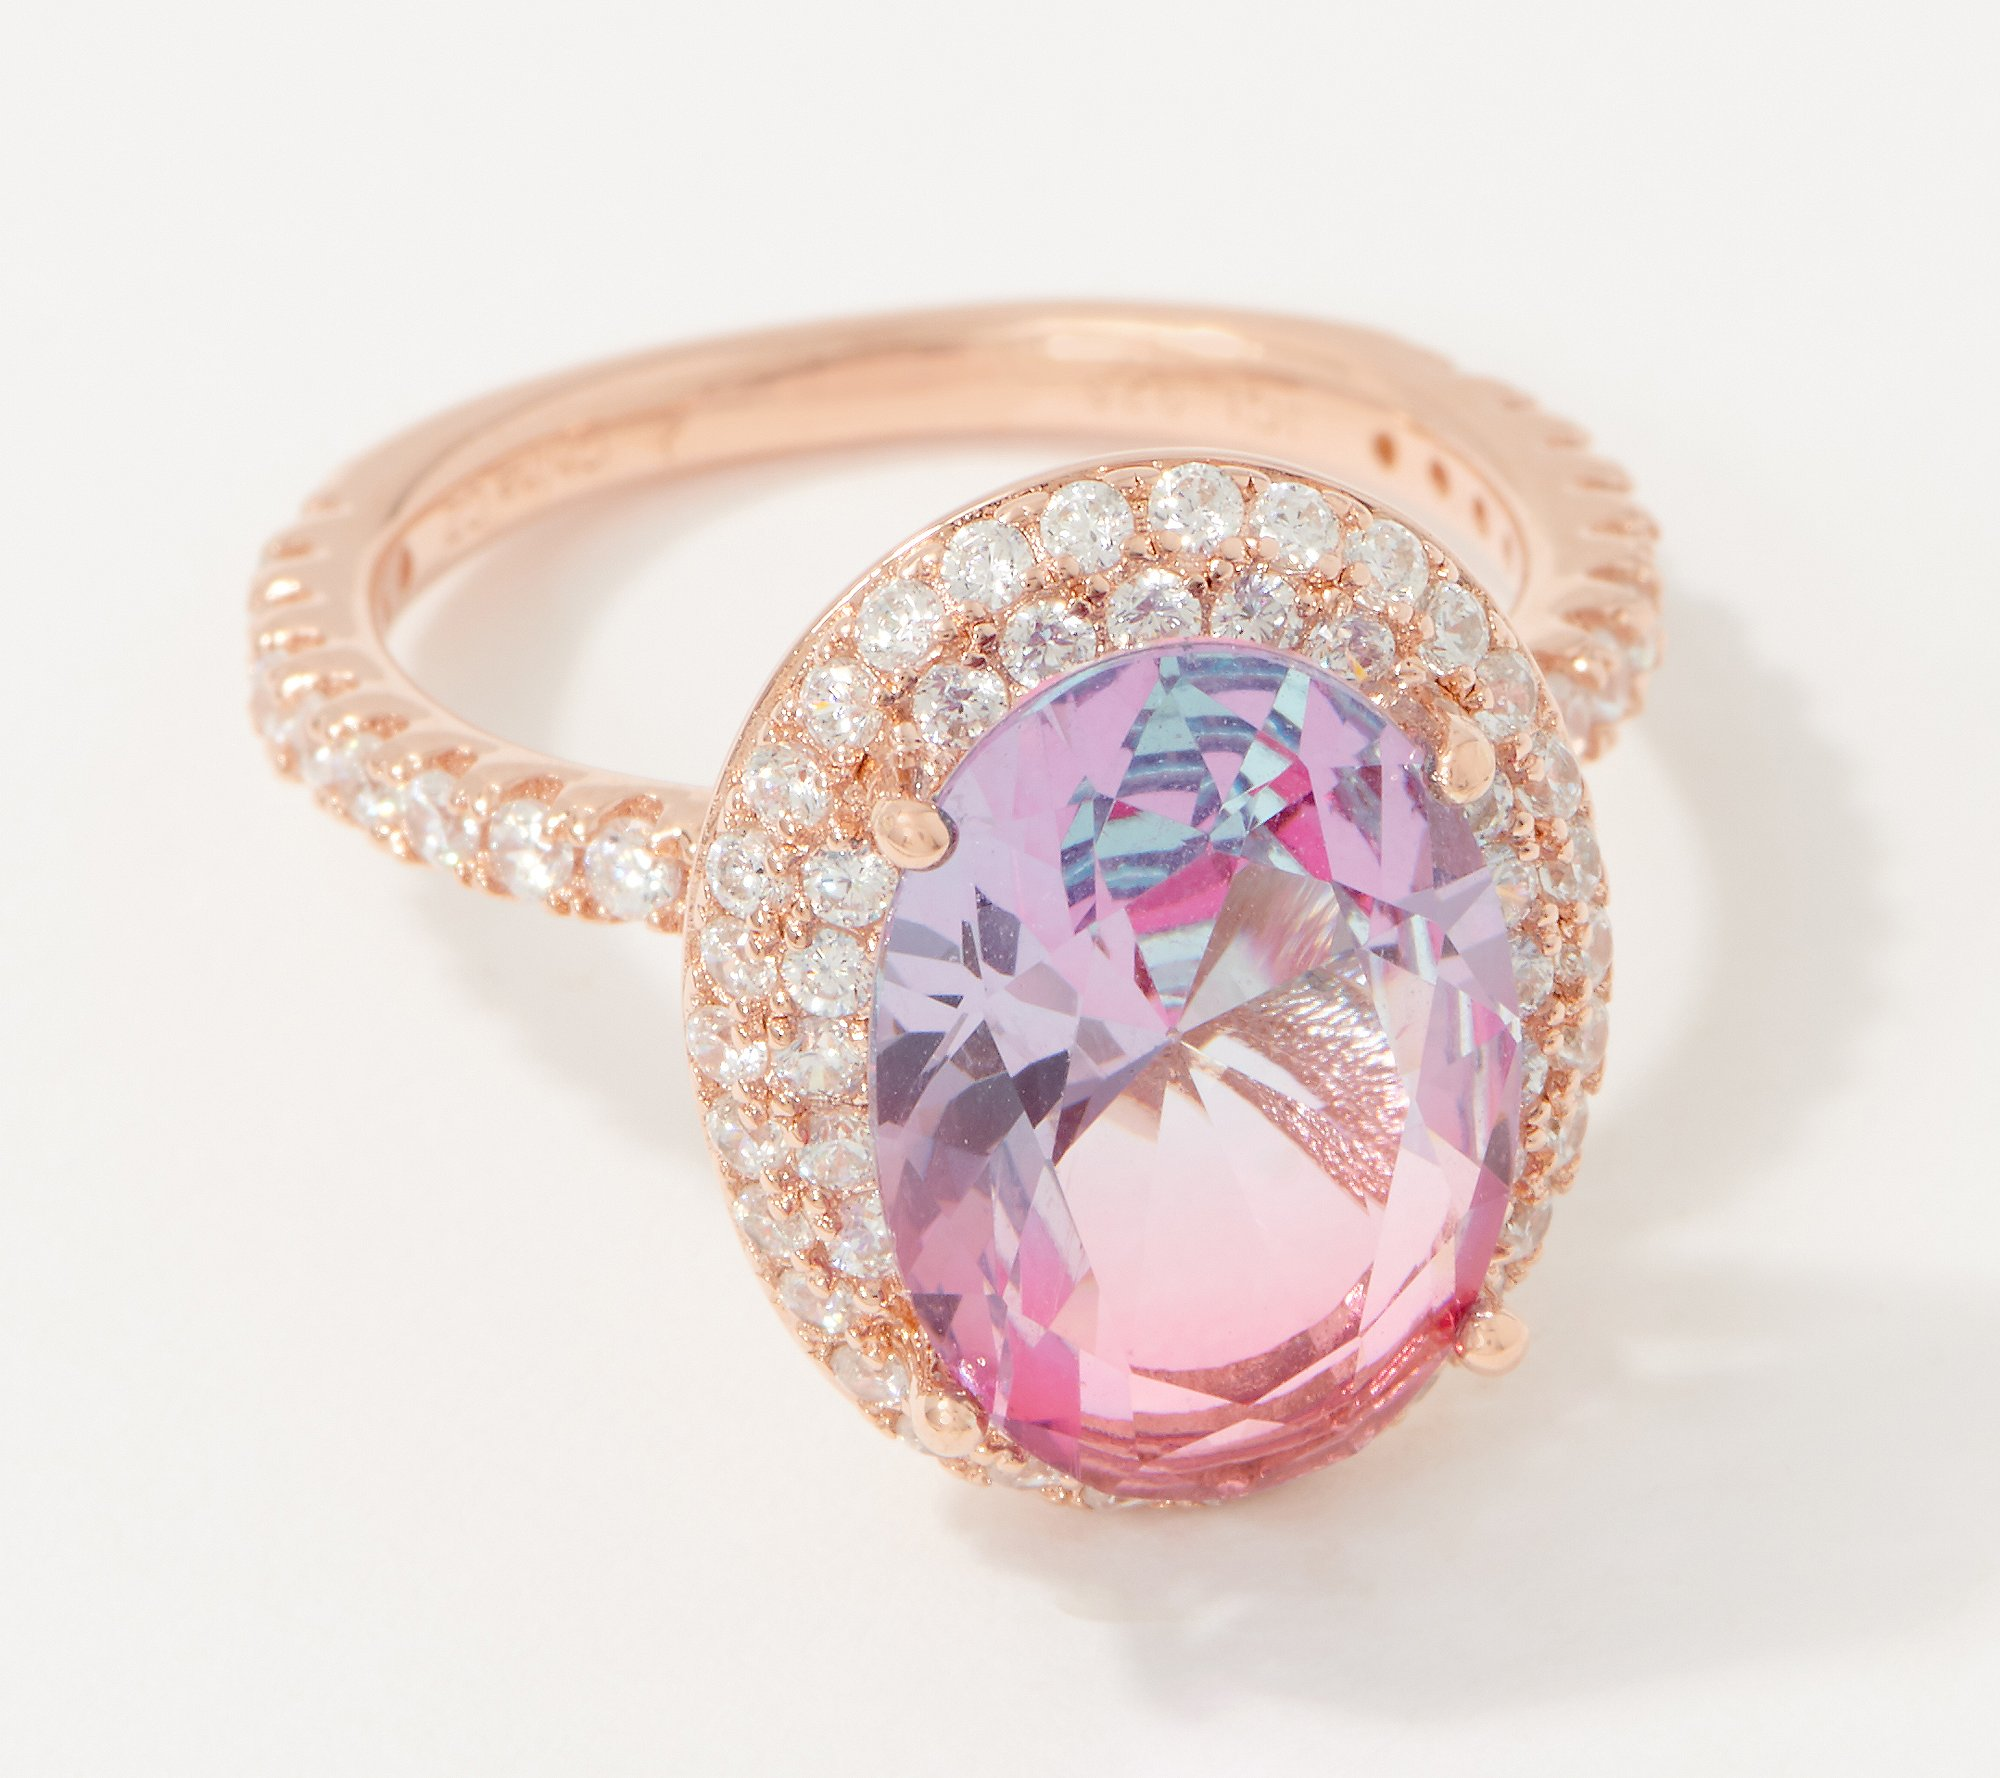 Colors Of Diamonique Ombre 9 5 Carat Oval Ring Sterling Silver Qvc Com